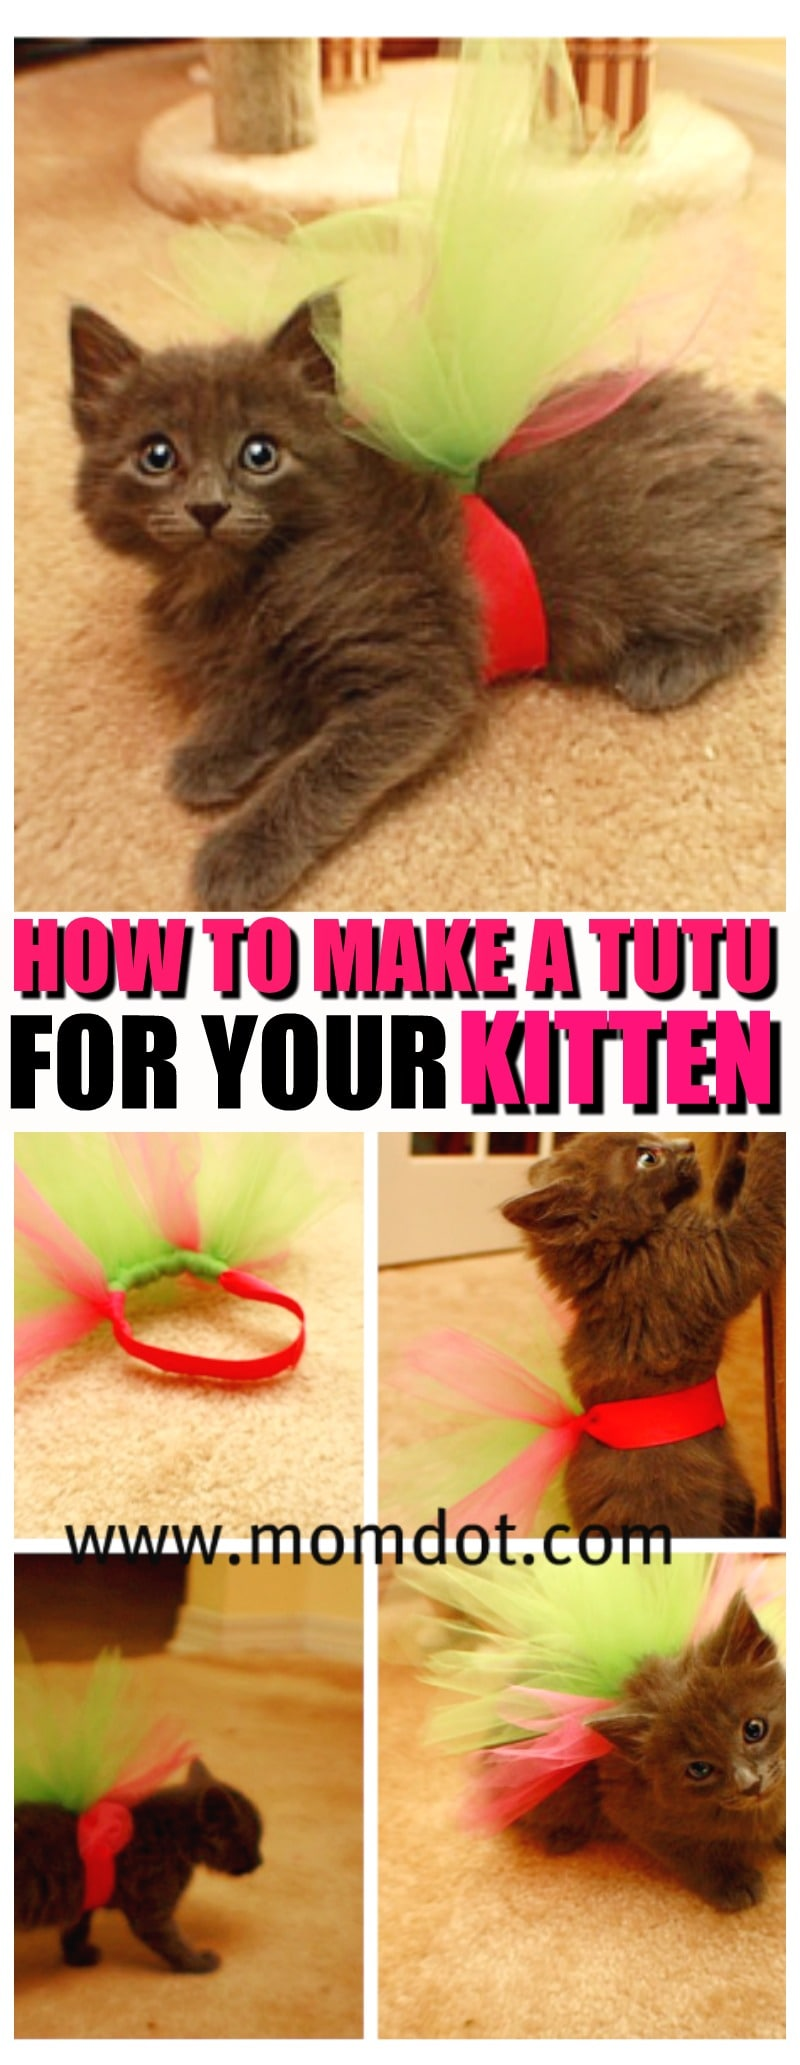 Kitten in a Tutu | How to make a tutu for your kitten | Tutu Tutorial